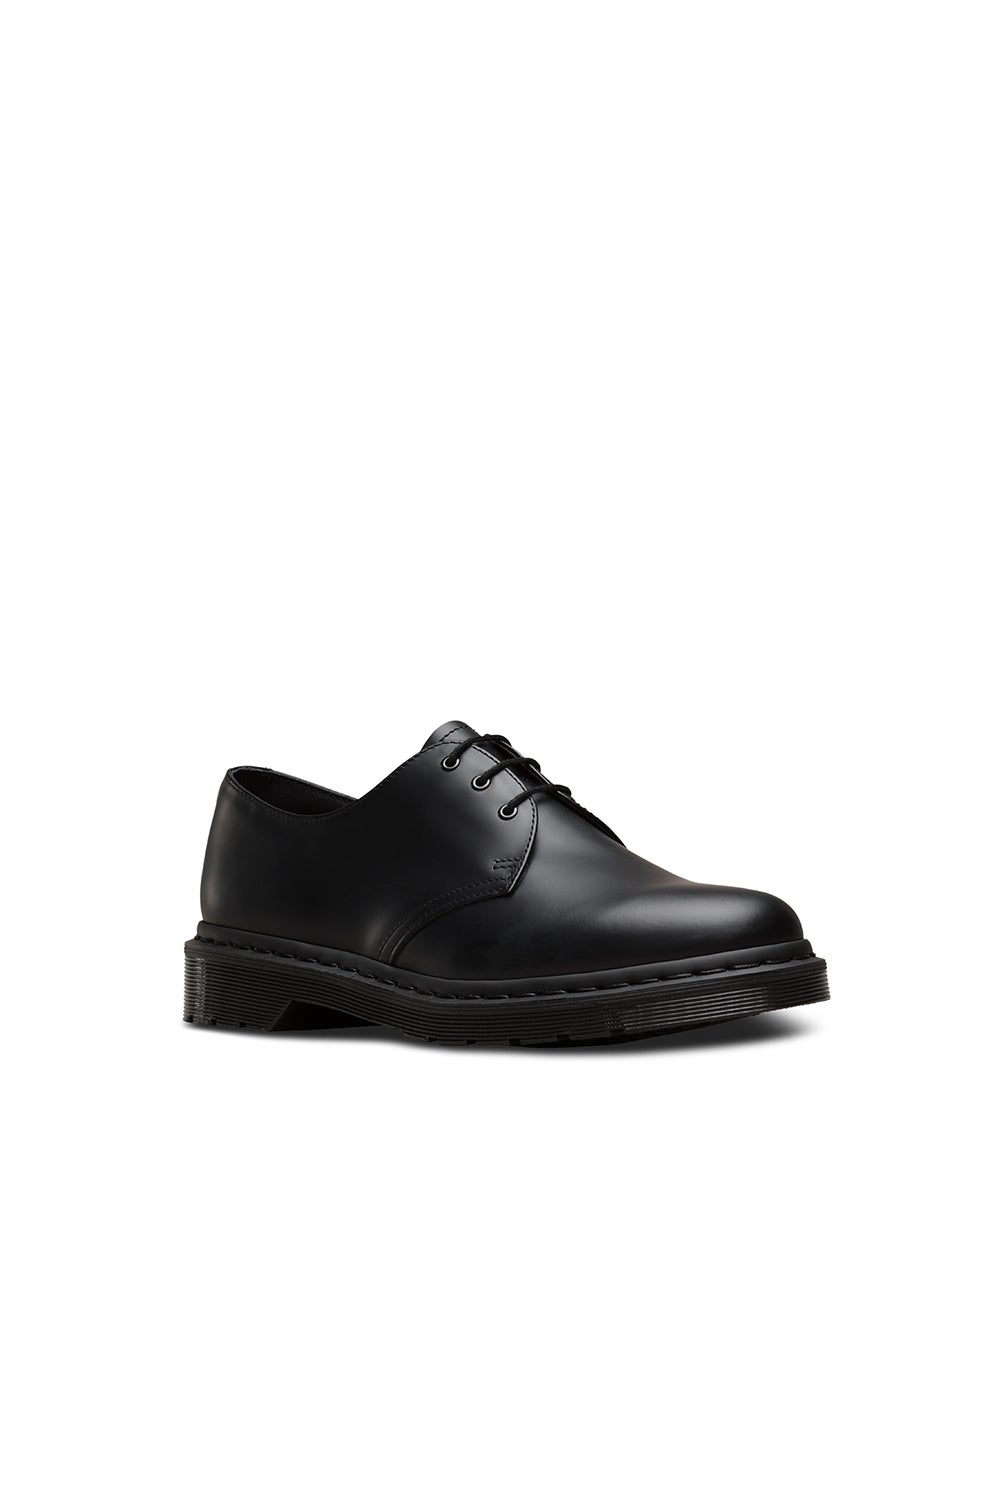 Dr. Martens 1461 Mono 3 Eye Shoe Smooth Black